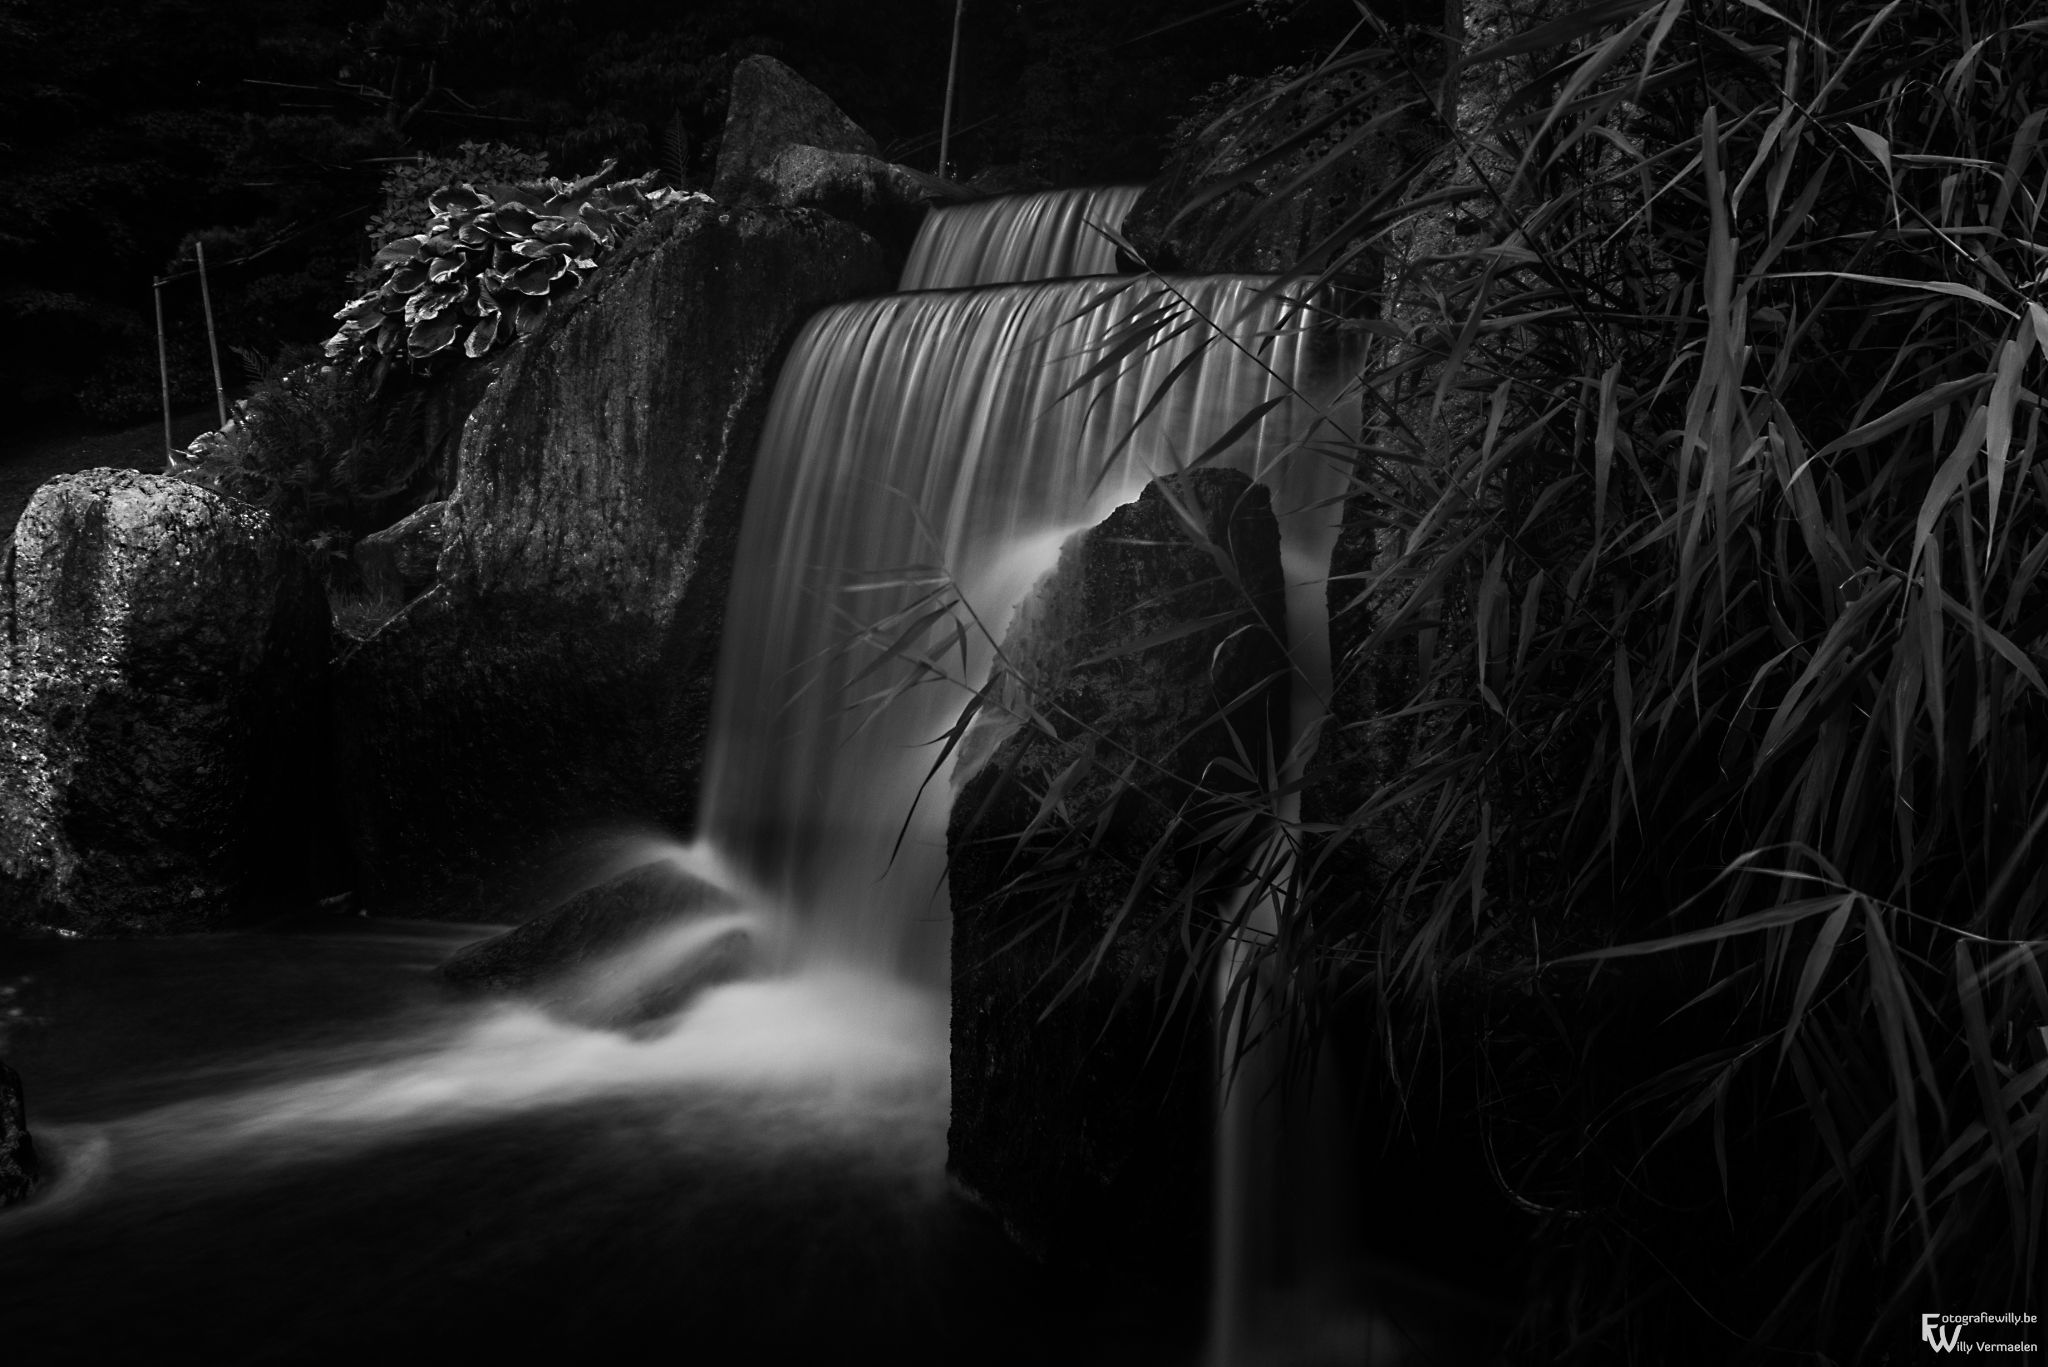 Japanese garden - Hasselt by fotografiewilly